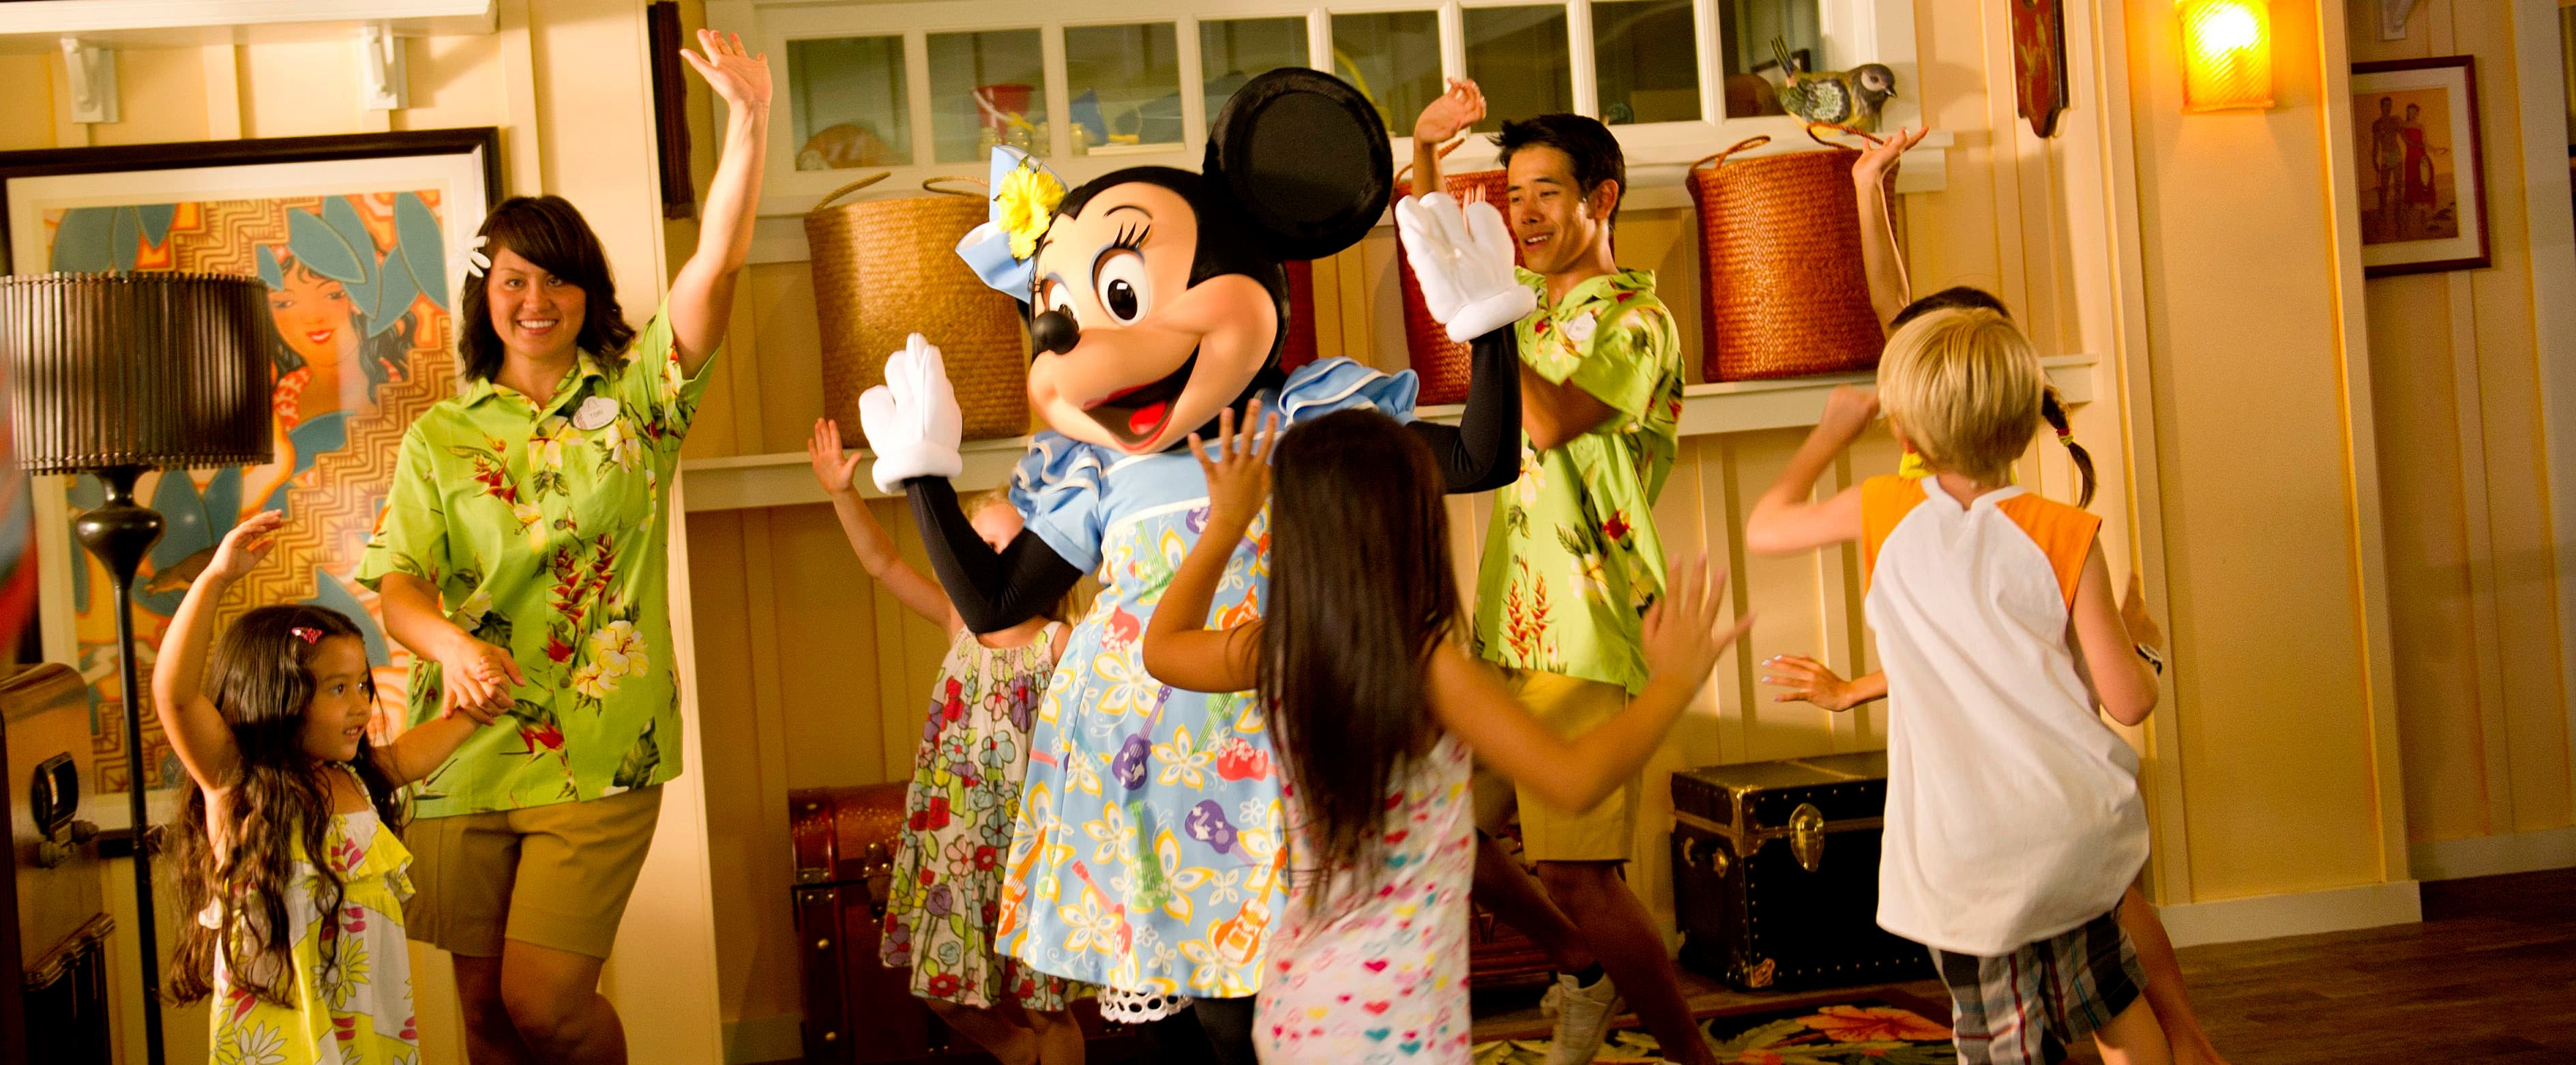 Kids dancing with Minnie Mouse at Aunty's Beach House